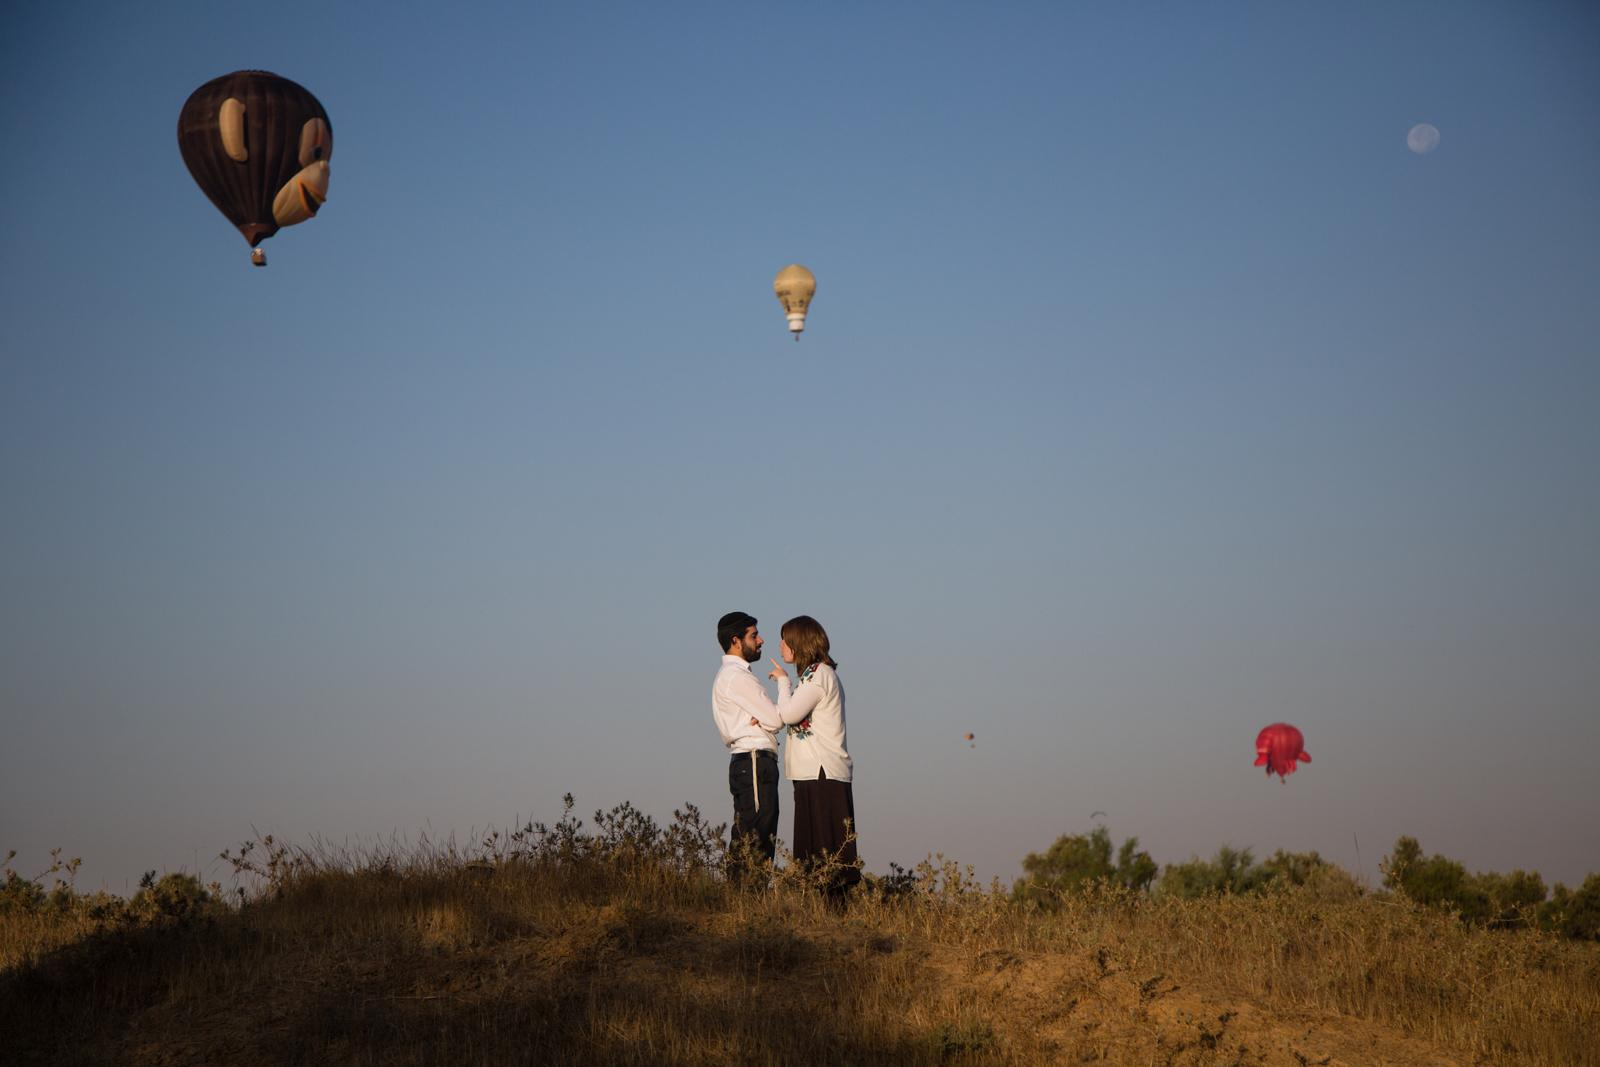 An Ultra-Orthodox Jewish couple stand together as hot air balloons fly overhead during a two-day international hot air balloon festival in Eshkol Park near the southern city of Netivot, Israel July 22, 2016.